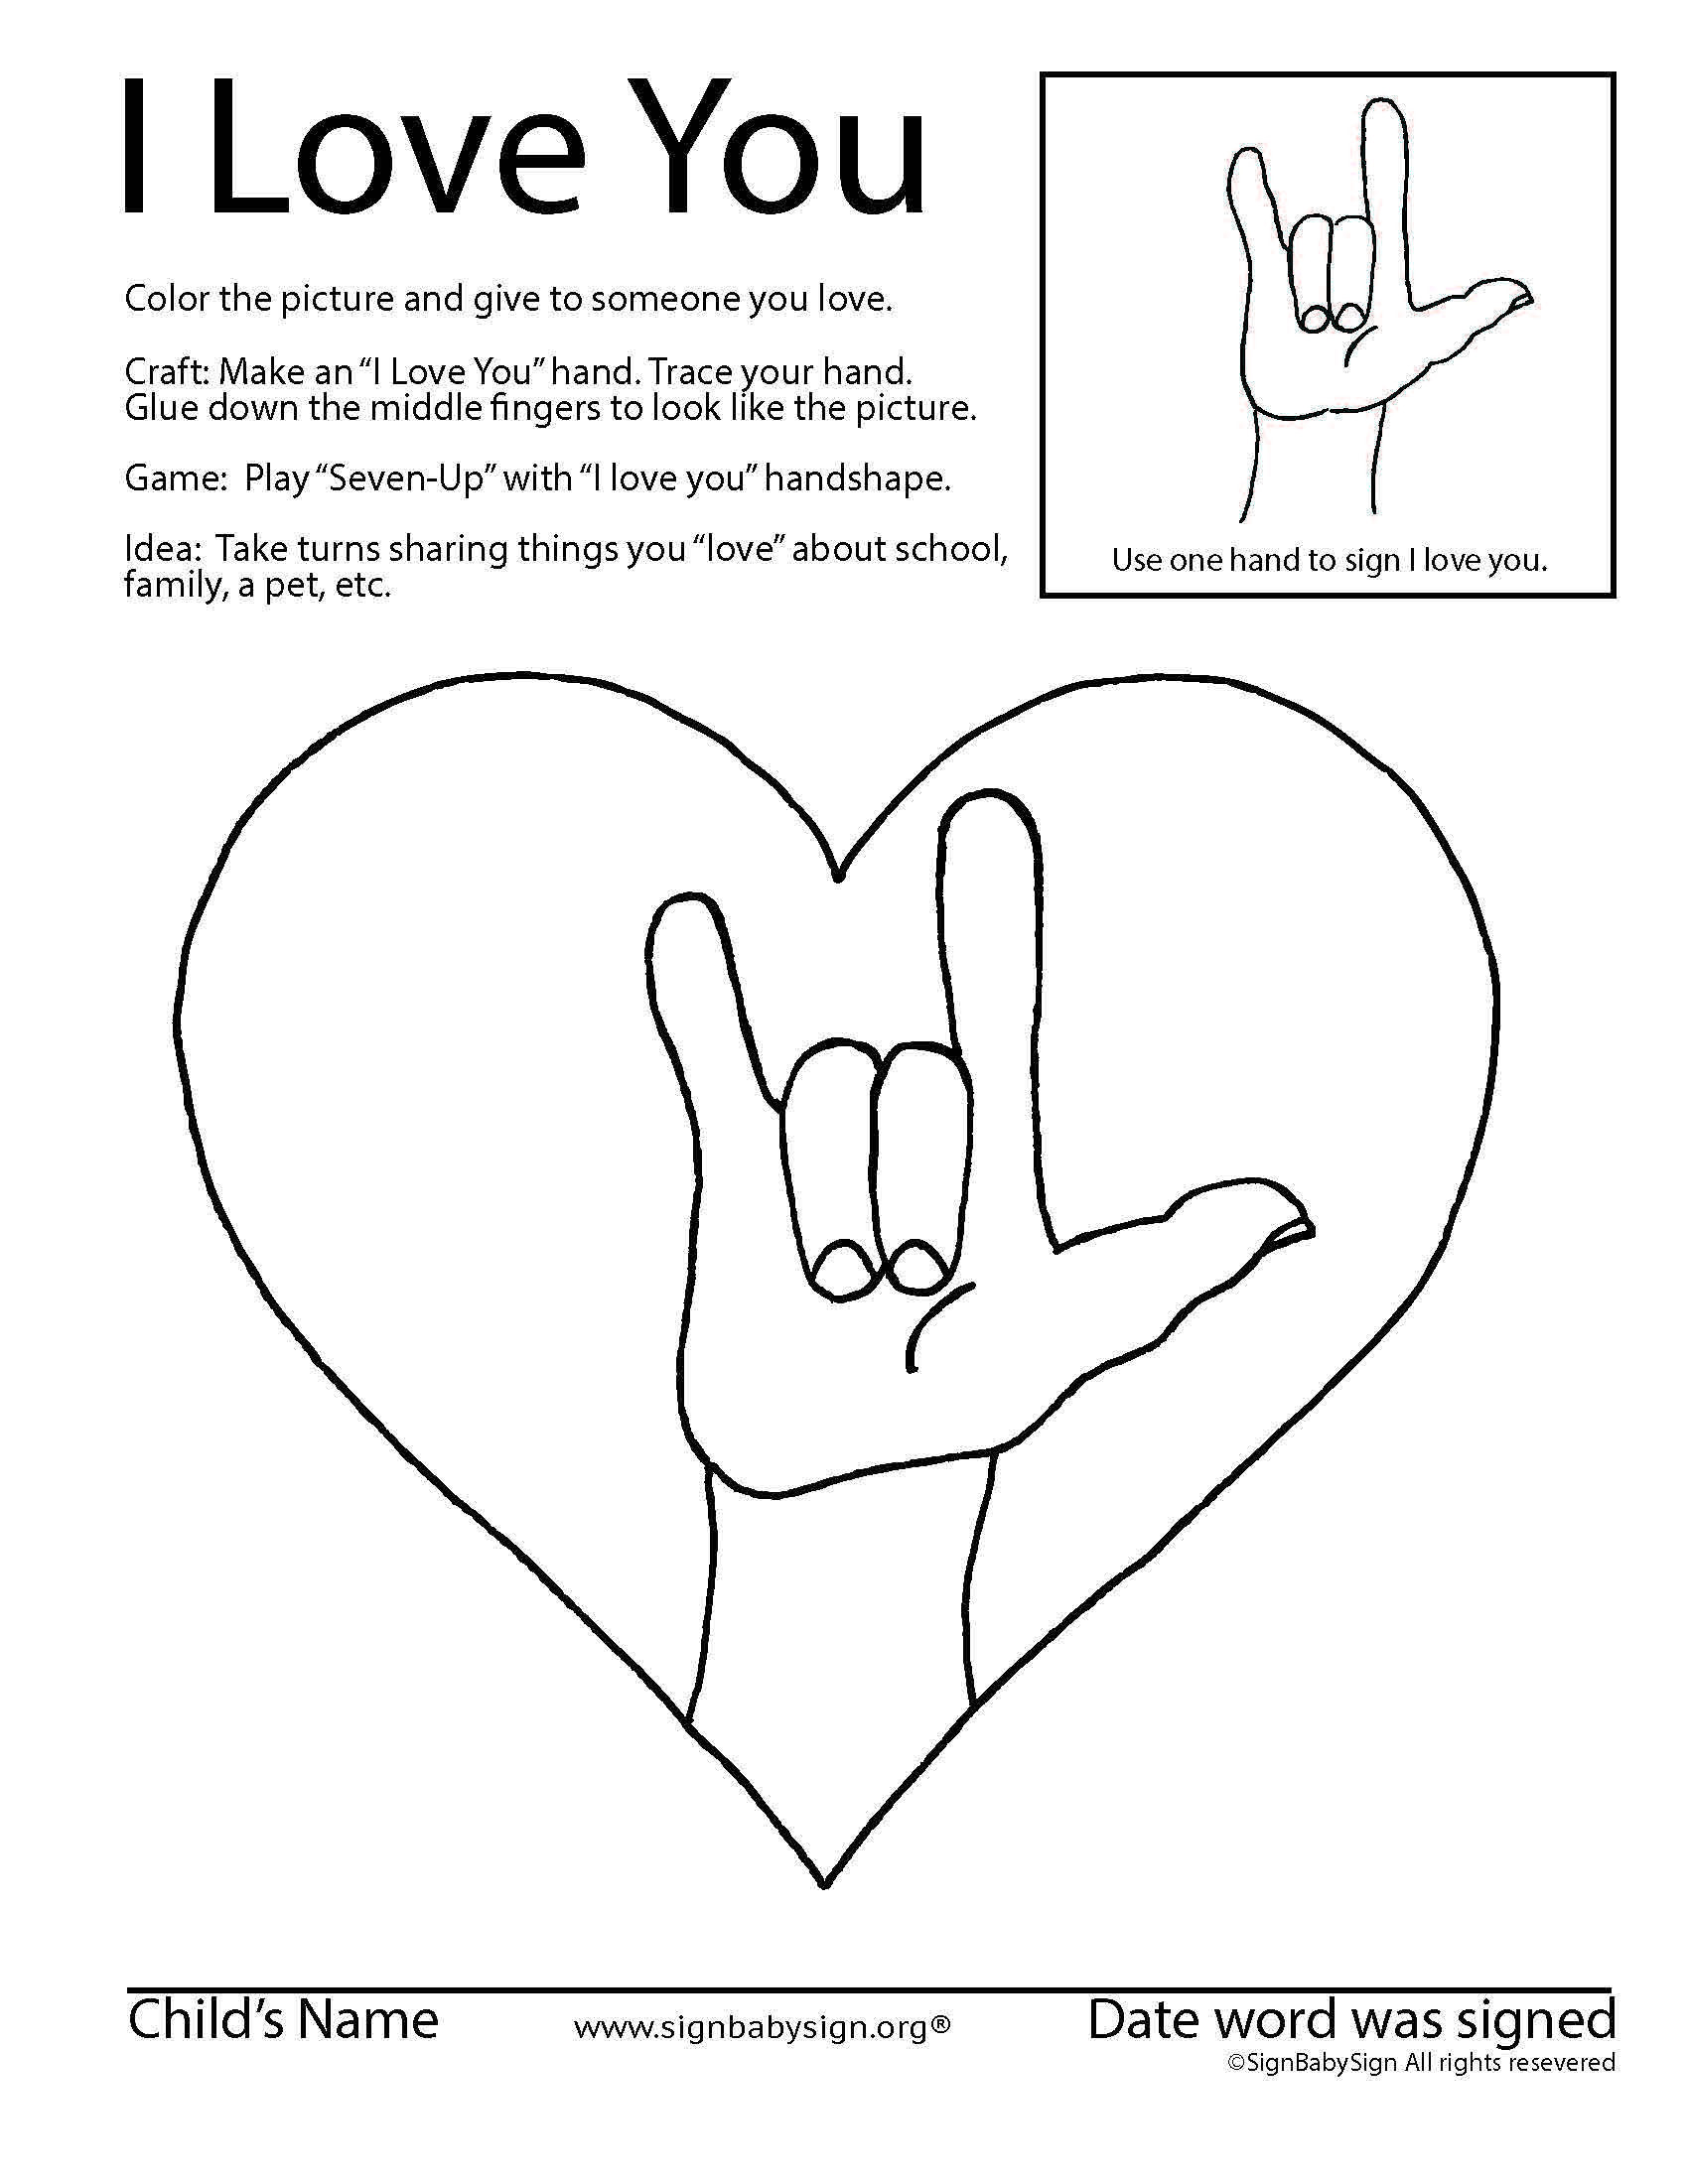 Sign Language Printable Worksheets asl Coloring & Activity Sheet for Preschool and Elementary